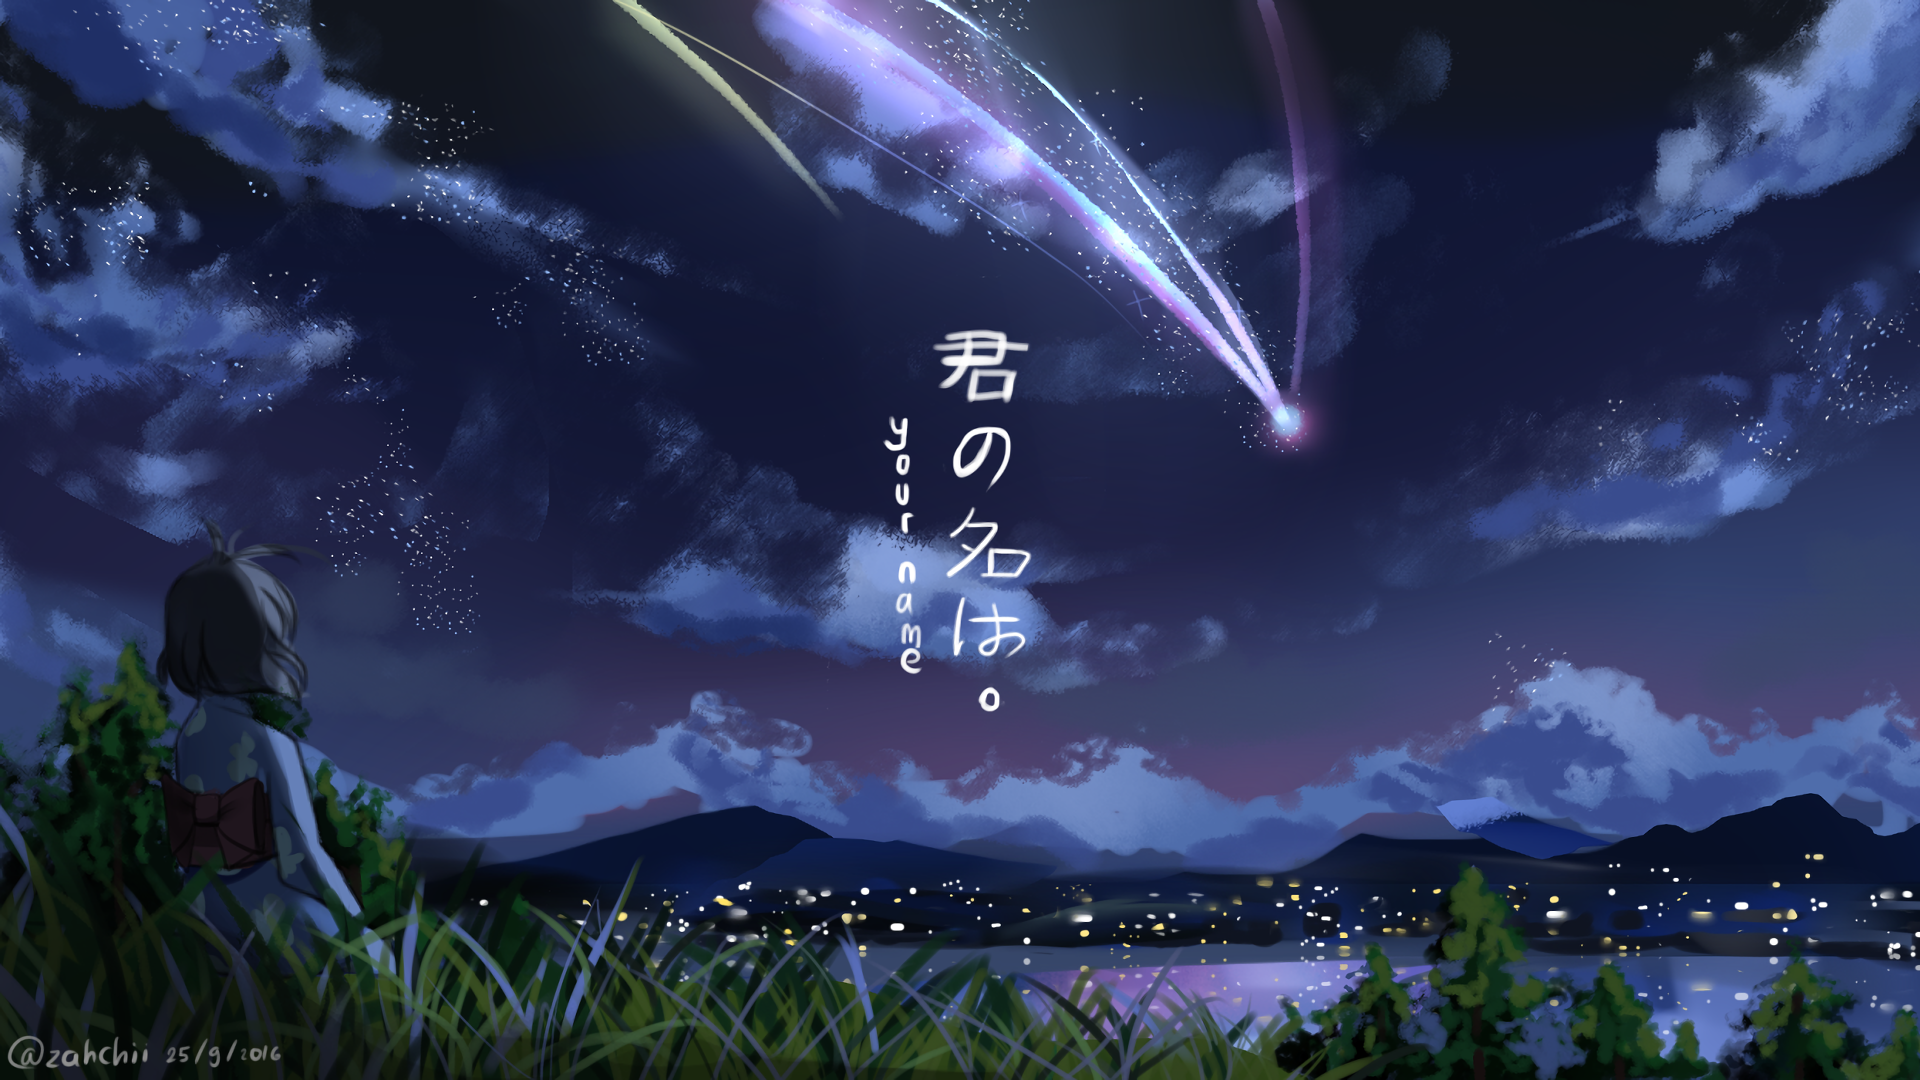 Makoto Shinkai Kimi No Na Wa Wallpaper Full HD Download 1920x1080